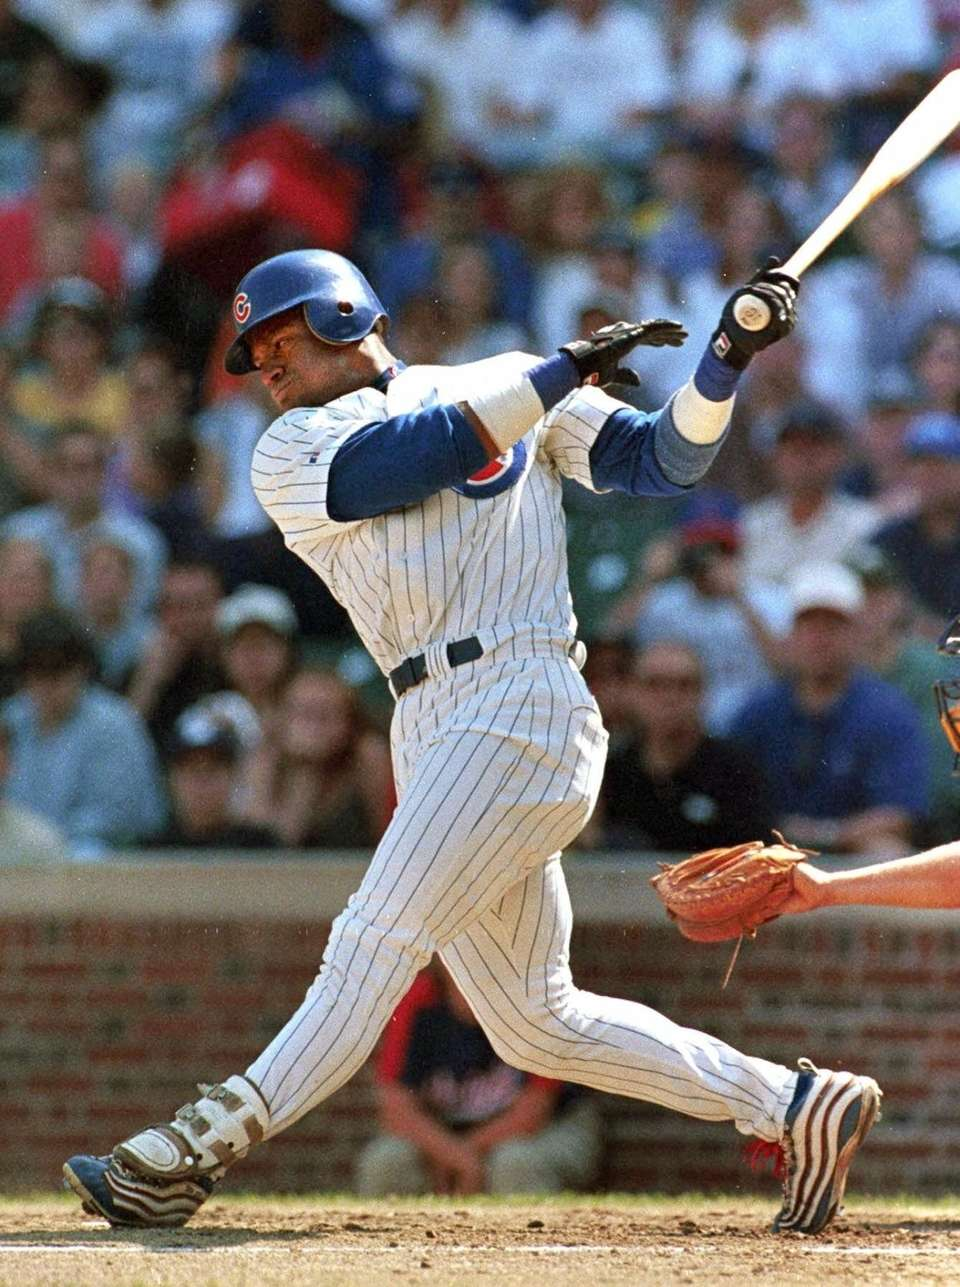 SAMMY SOSA 1999, Chicago Cubs 63 home runs